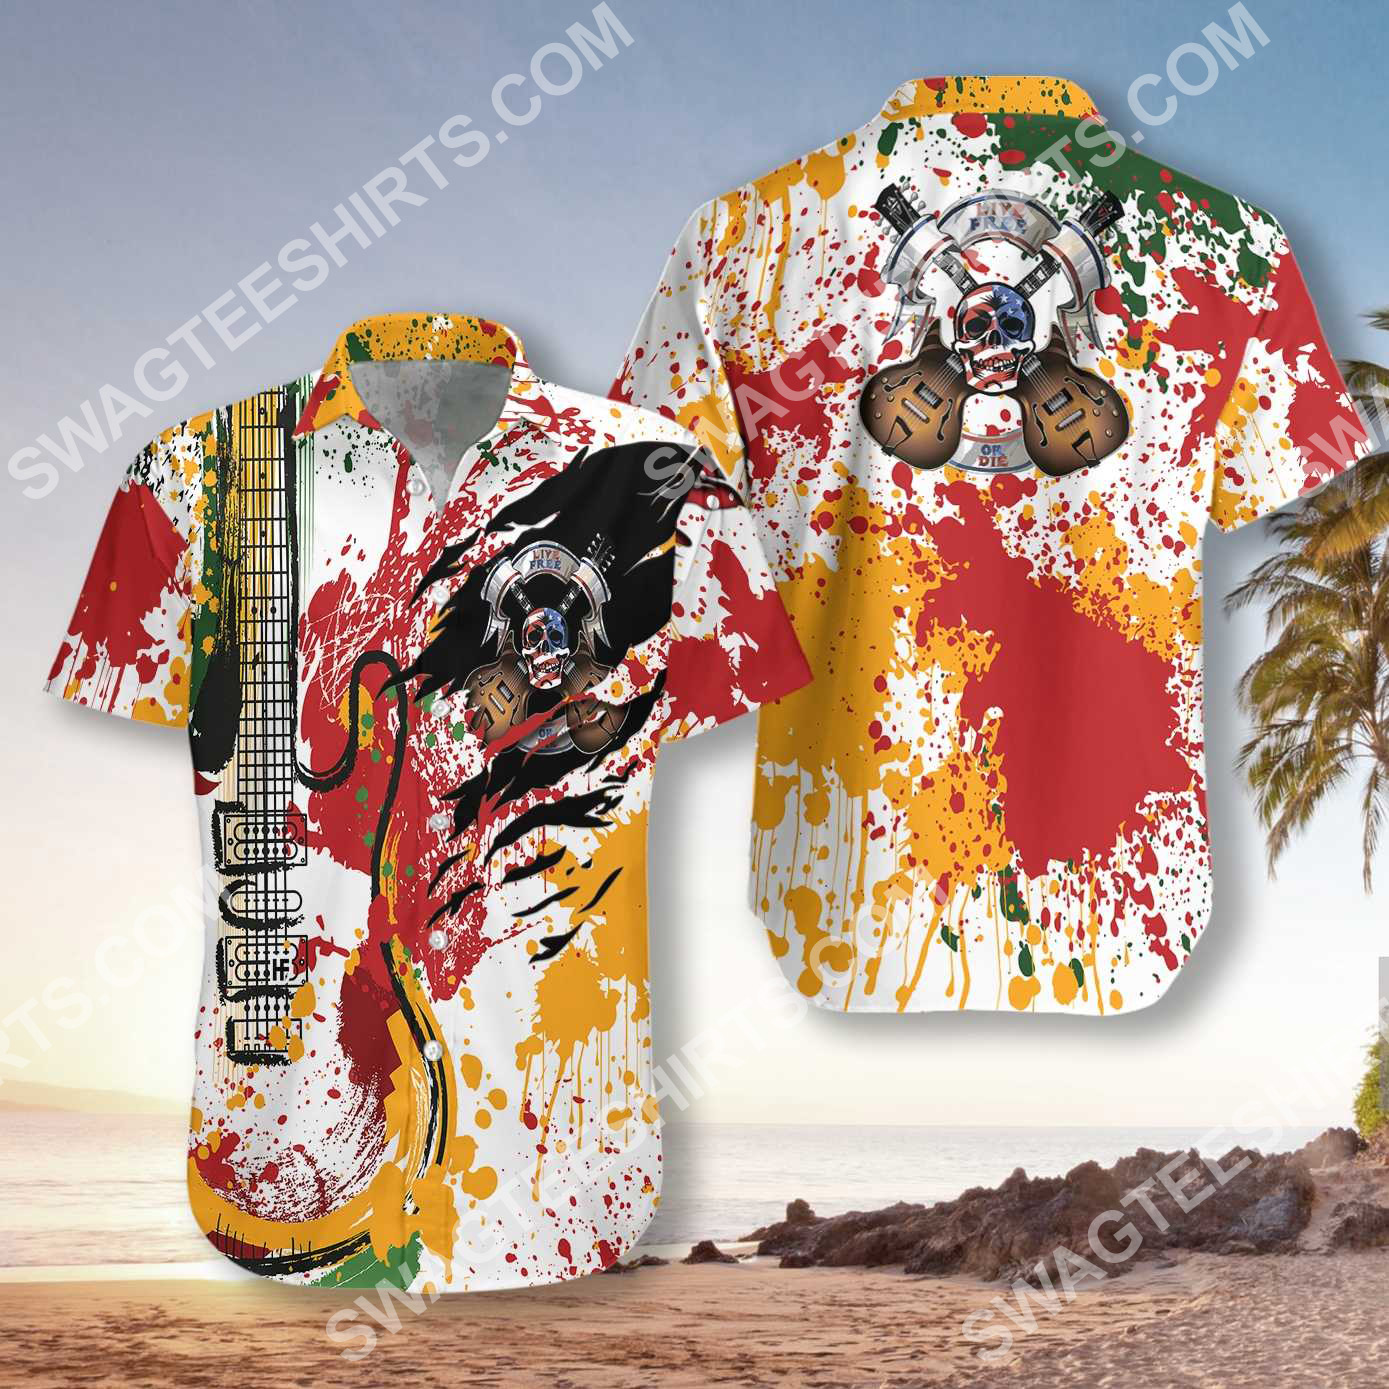 guitar live free or die all over printed hawaiian shirt 2(1)